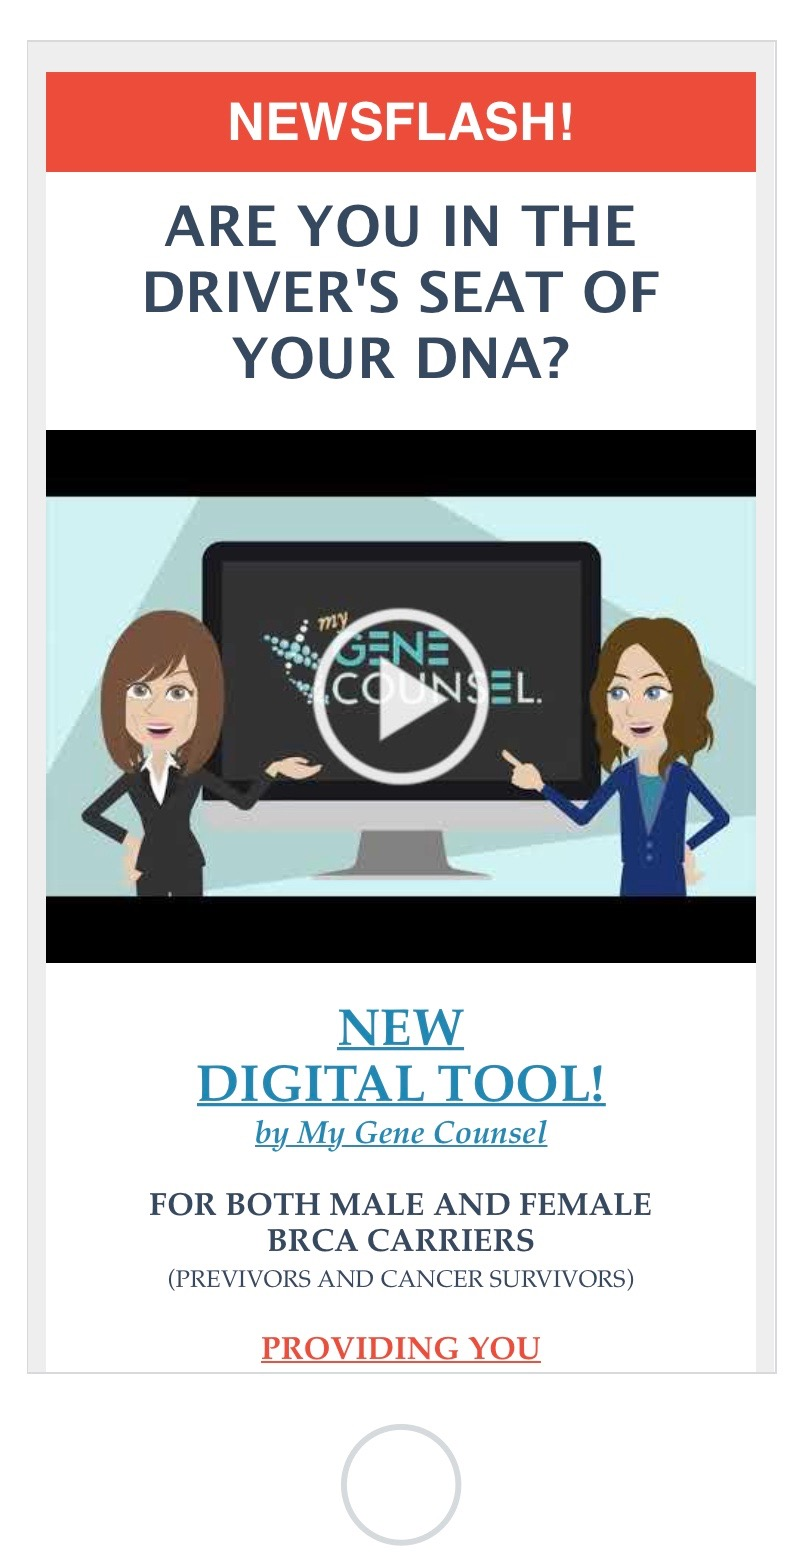 NEW DIGITAL TOOL FOR BRCA CARRIERS!